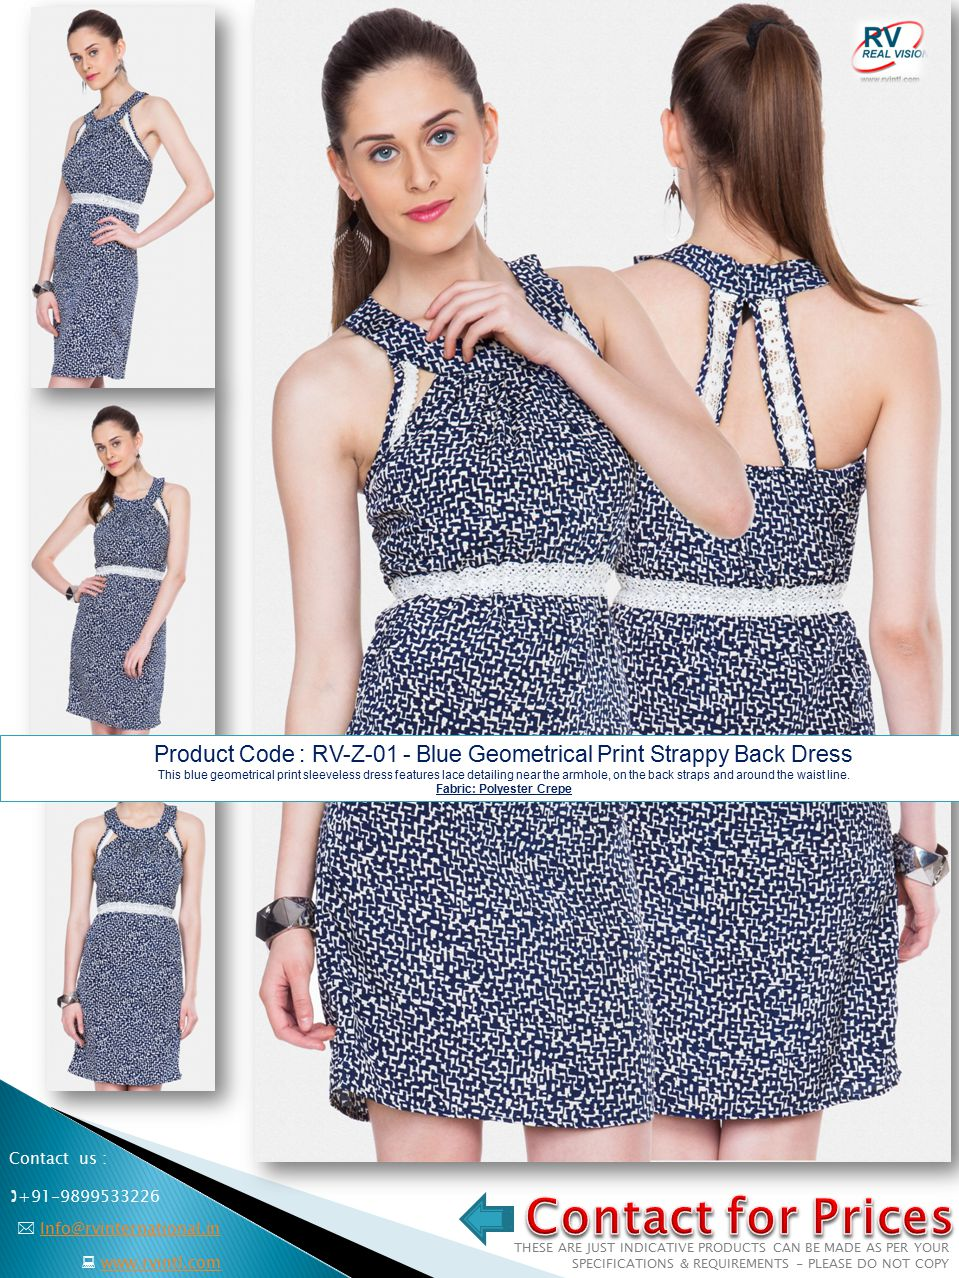 Navy Blue Side Pleated Polka Dot Dress This blue three quarter sleeves dress side pleats in the front making it asymmetrical.